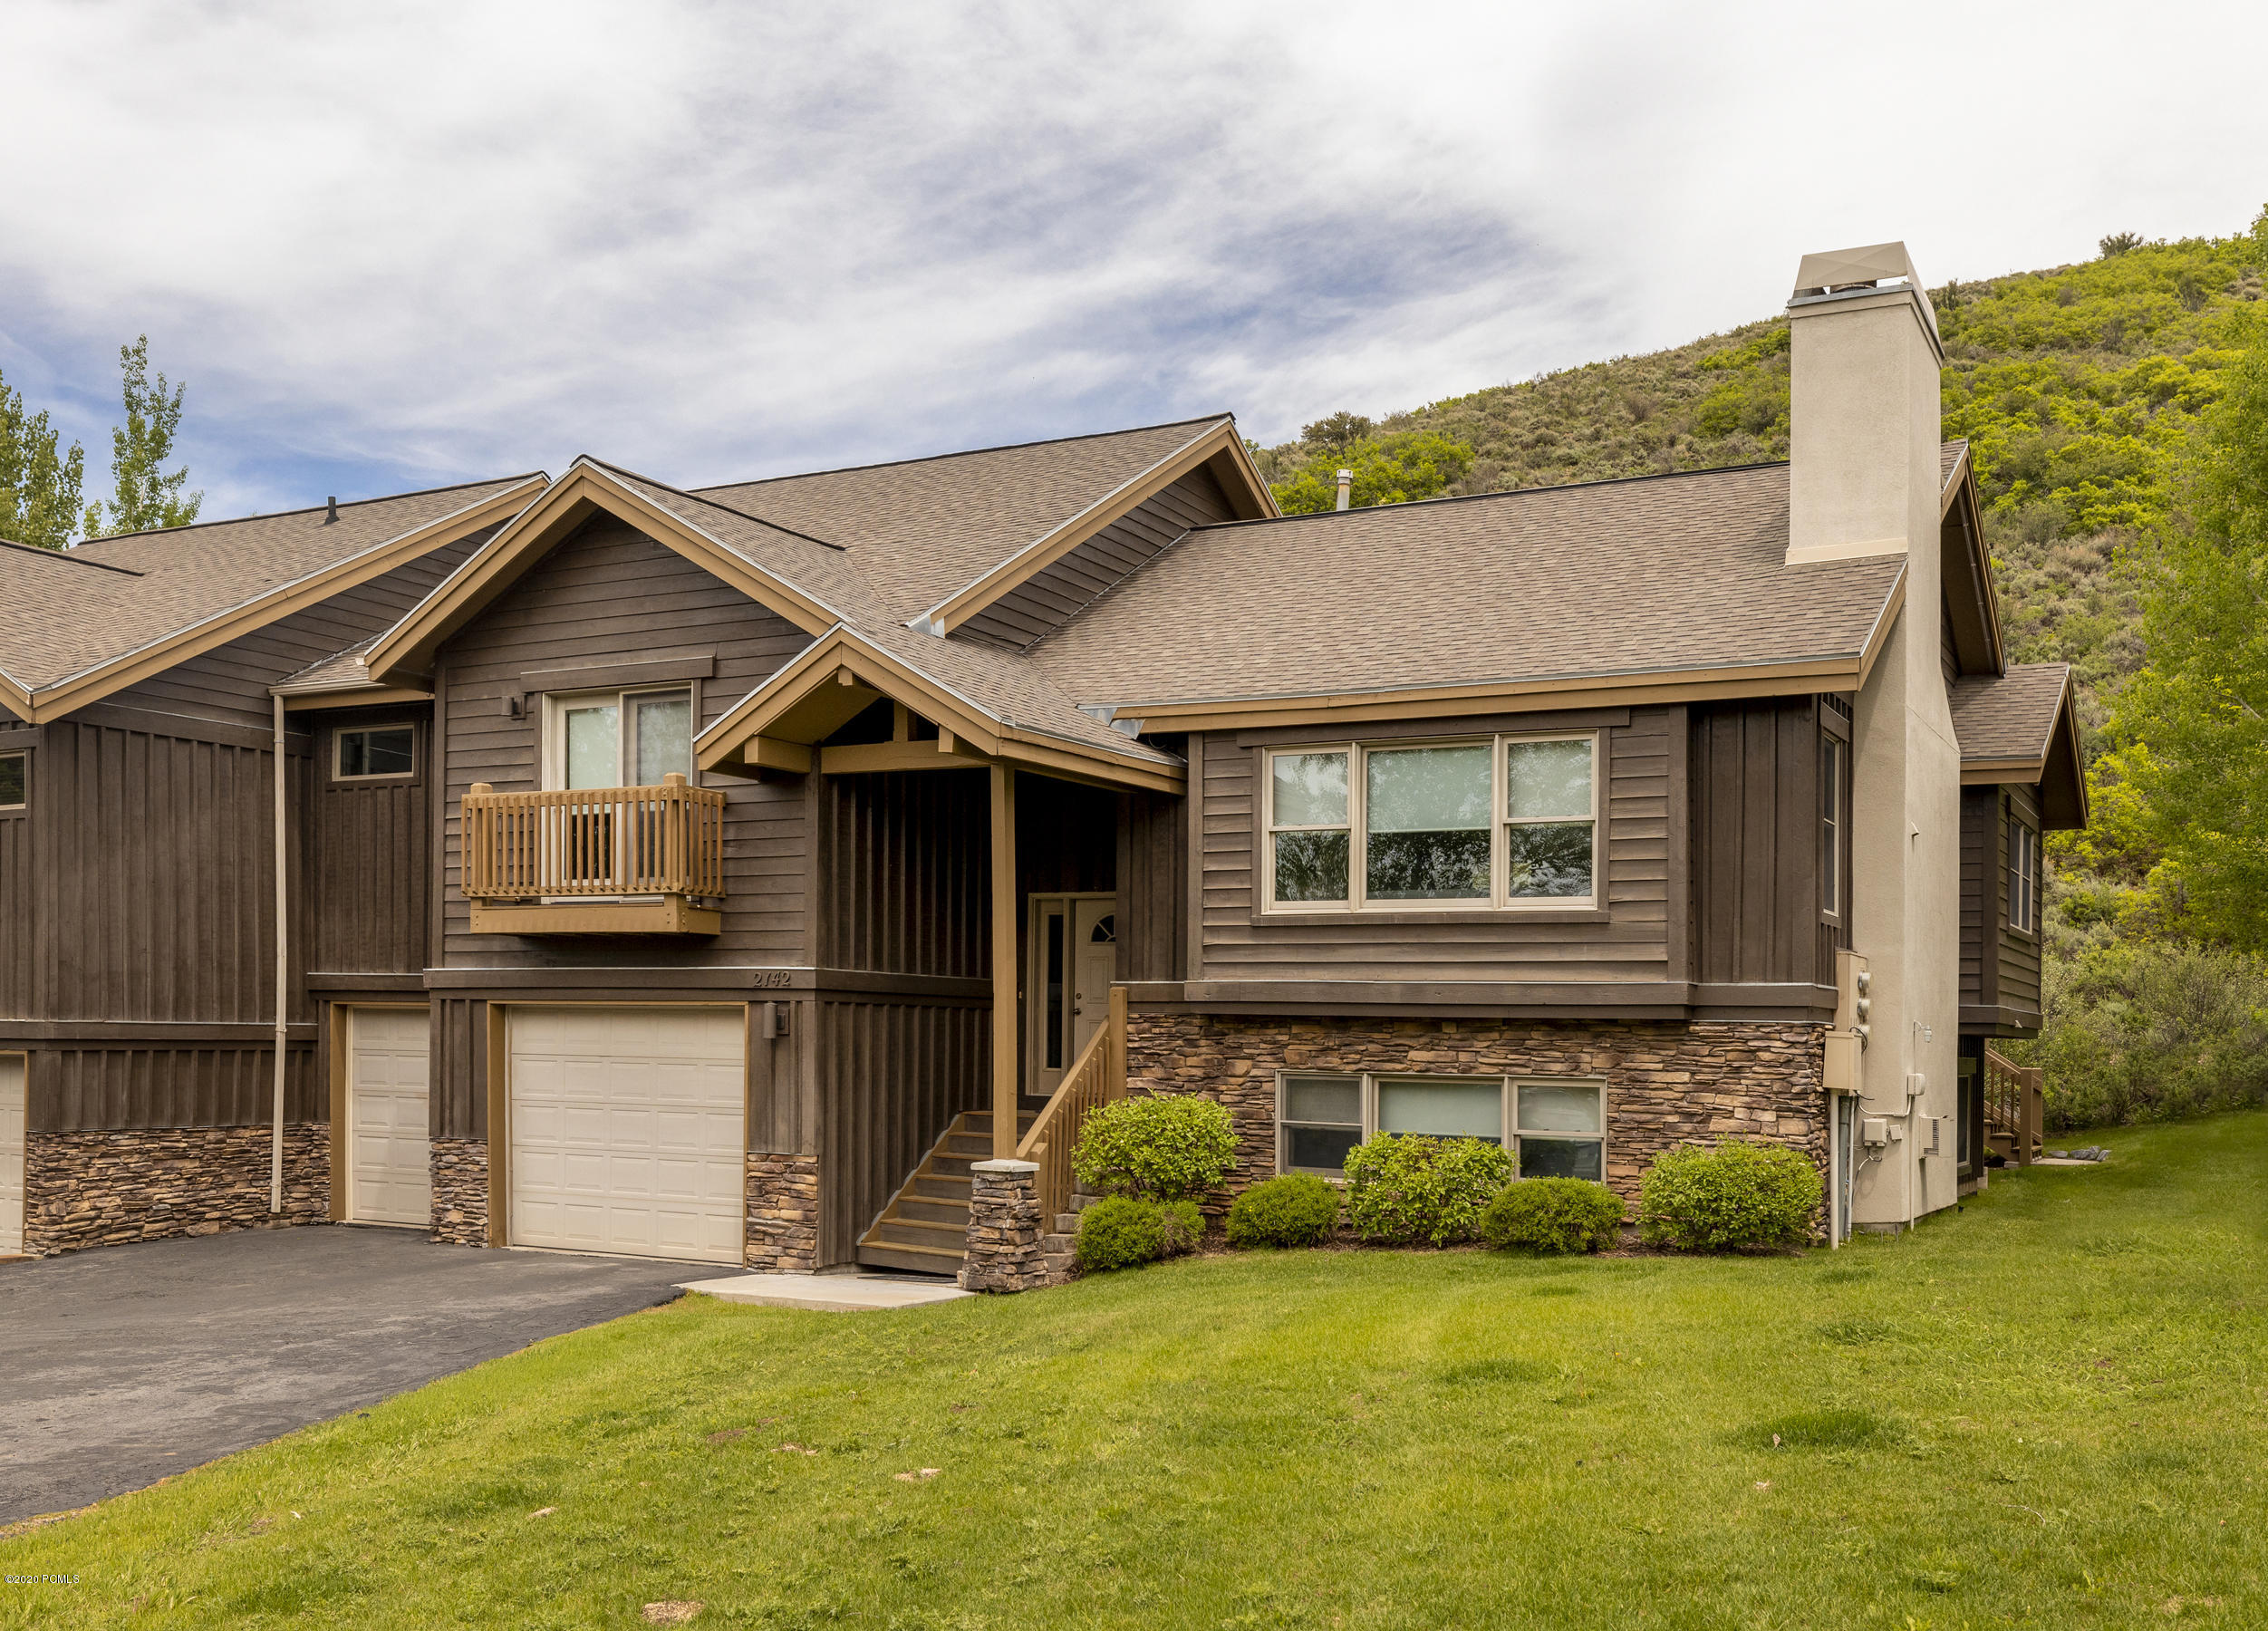 2142 Euston Drive, Park City, Utah 84060, 4 Bedrooms Bedrooms, ,4 BathroomsBathrooms,Condominium,For Sale,Euston,12002756